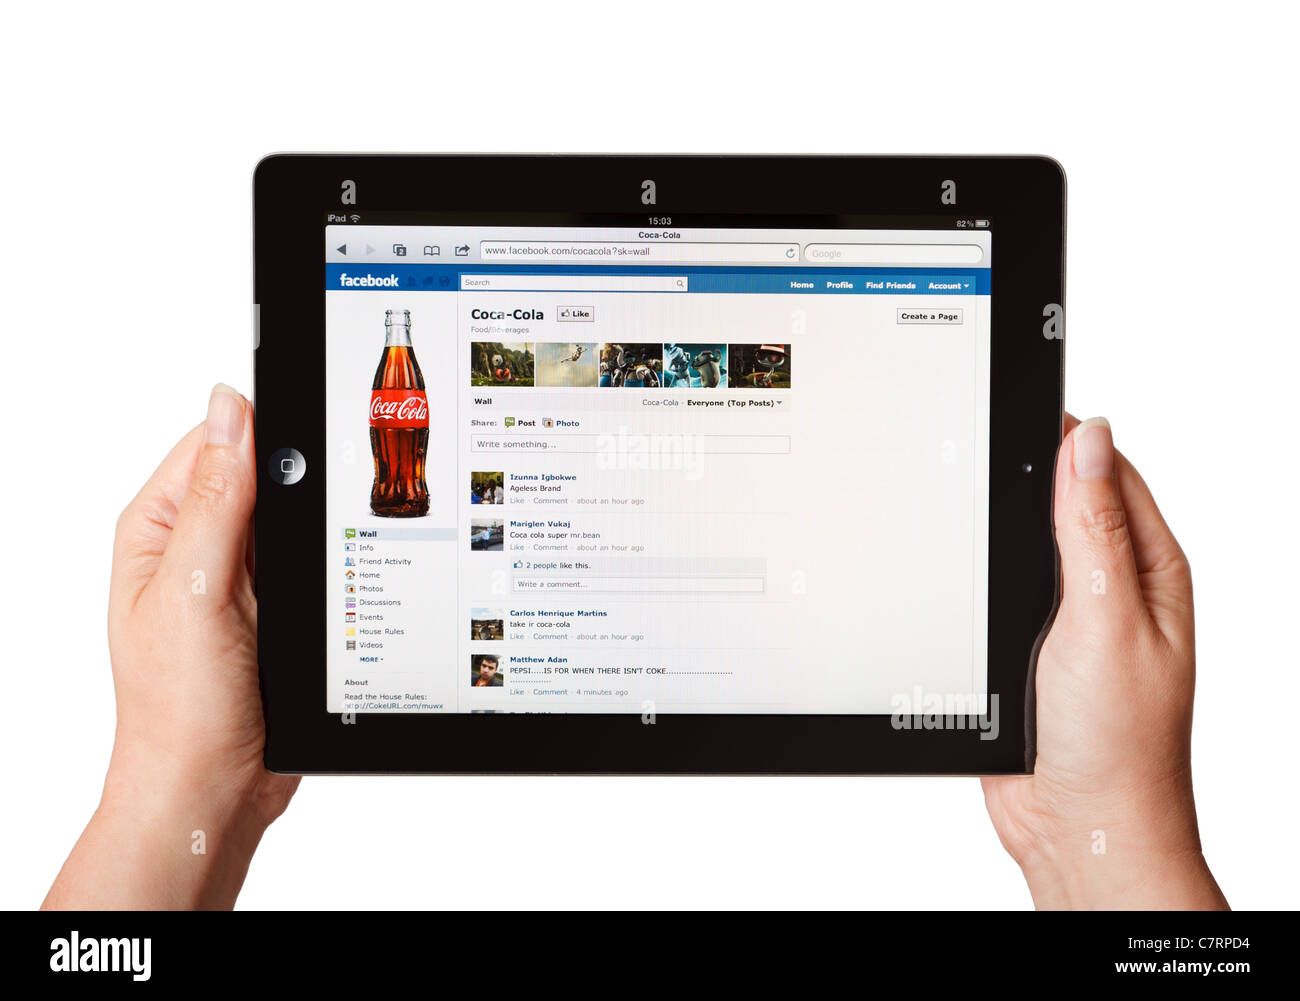 Female hands holding iPad showing online Coca Cola Facebook page - Stock Image